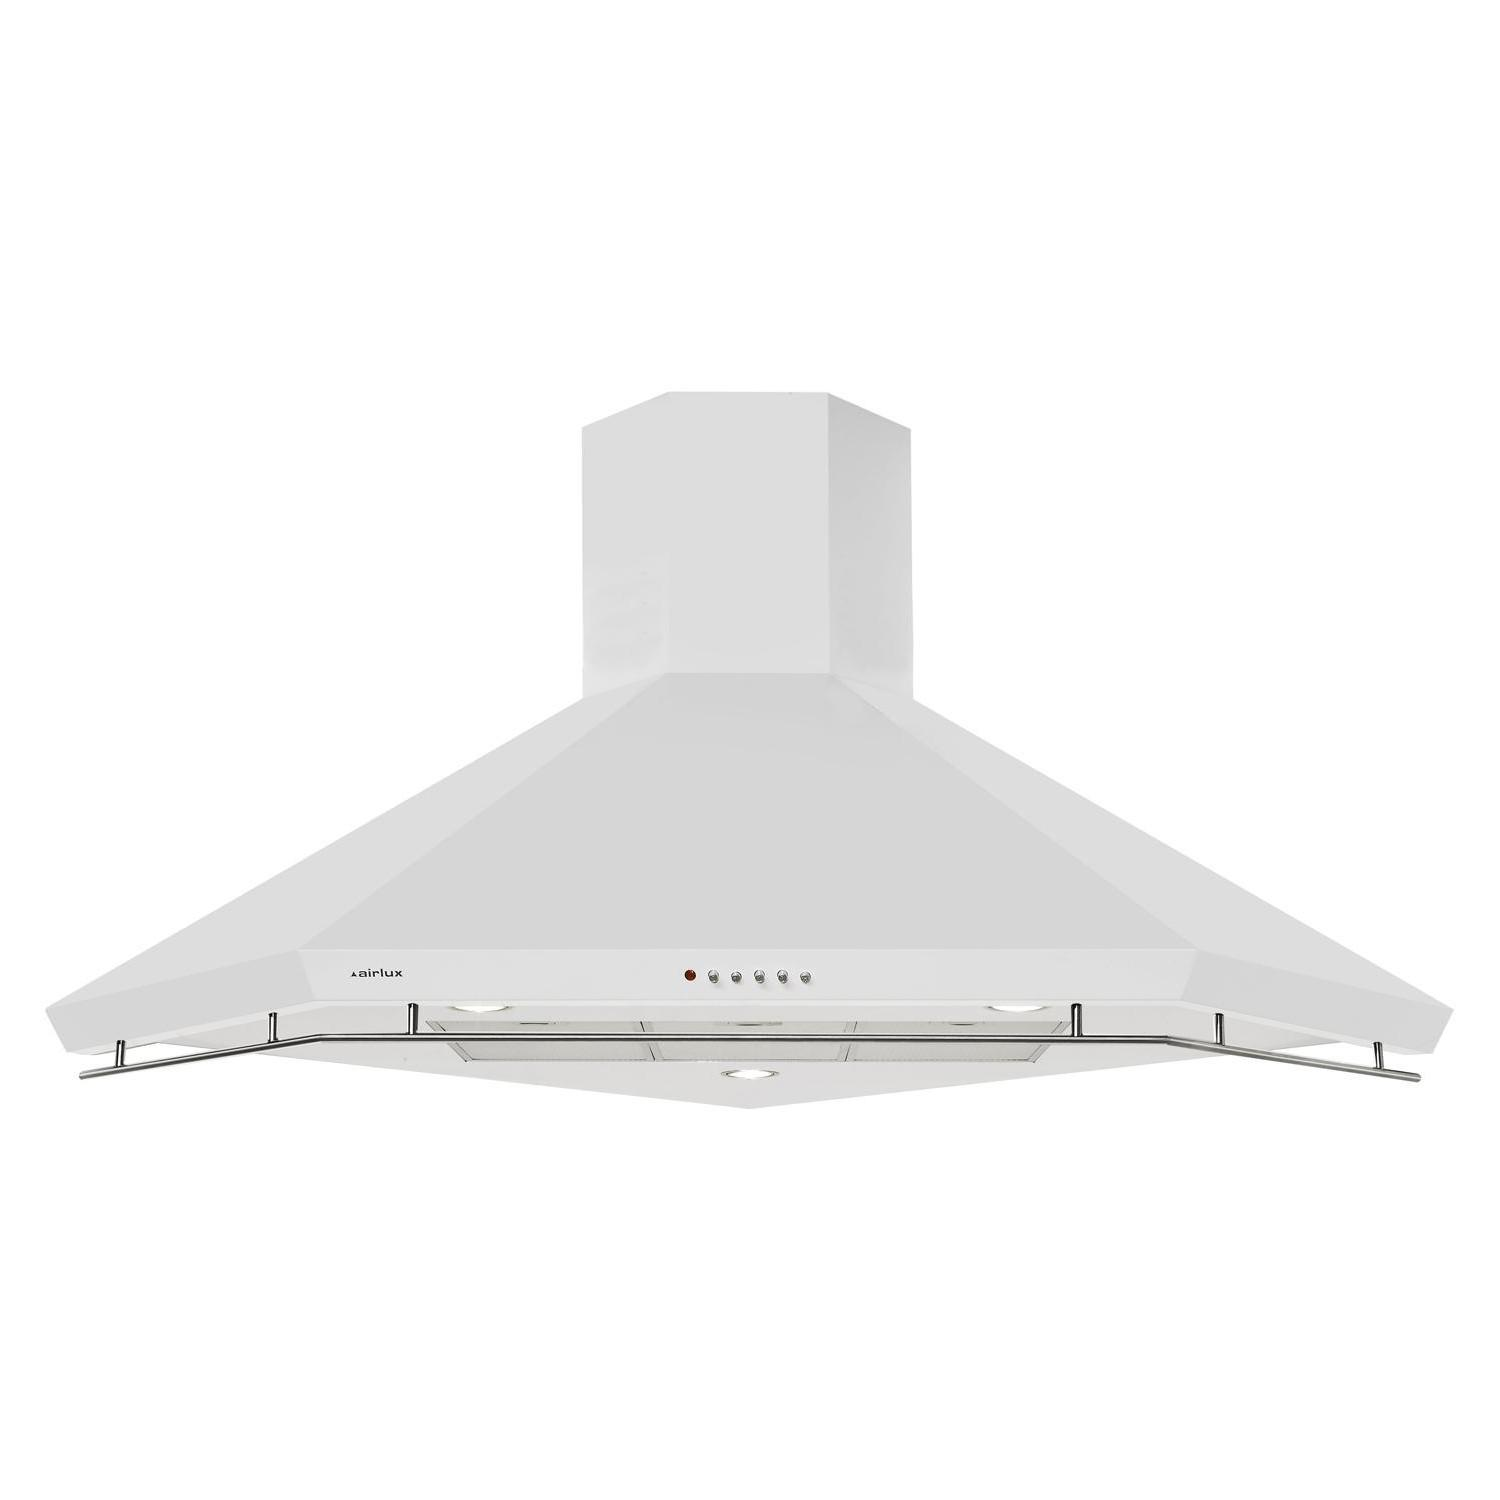 hotte d 39 angle airlux ahk110wh electromenager grossiste